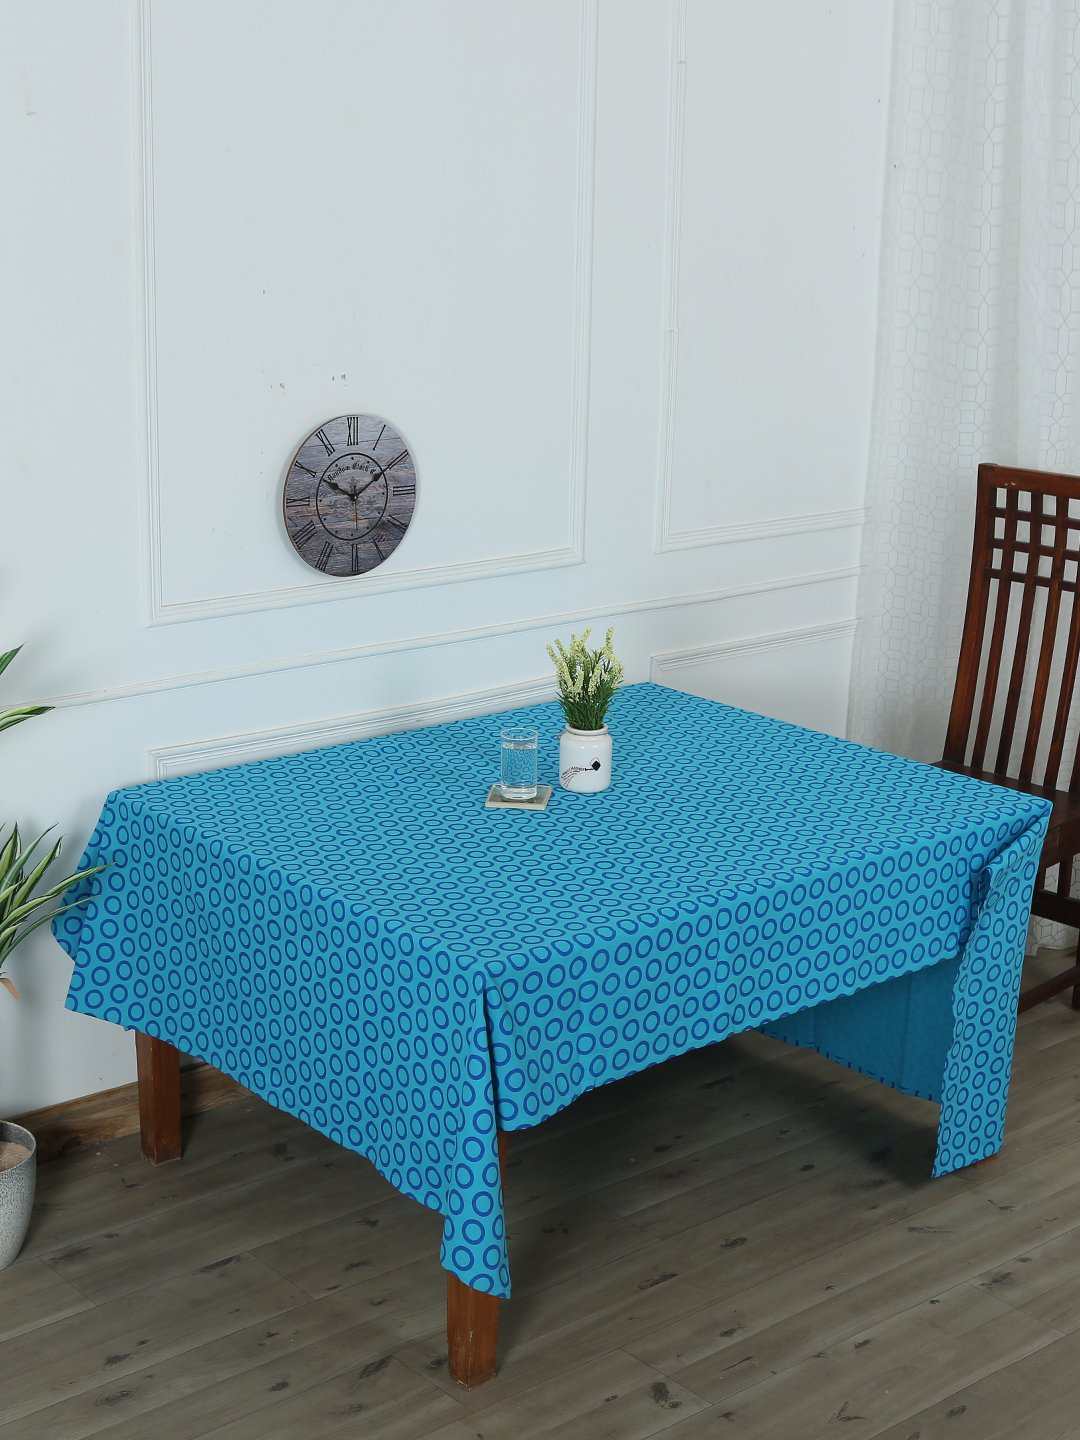 Handcrafted Azure Artistry Table Cover